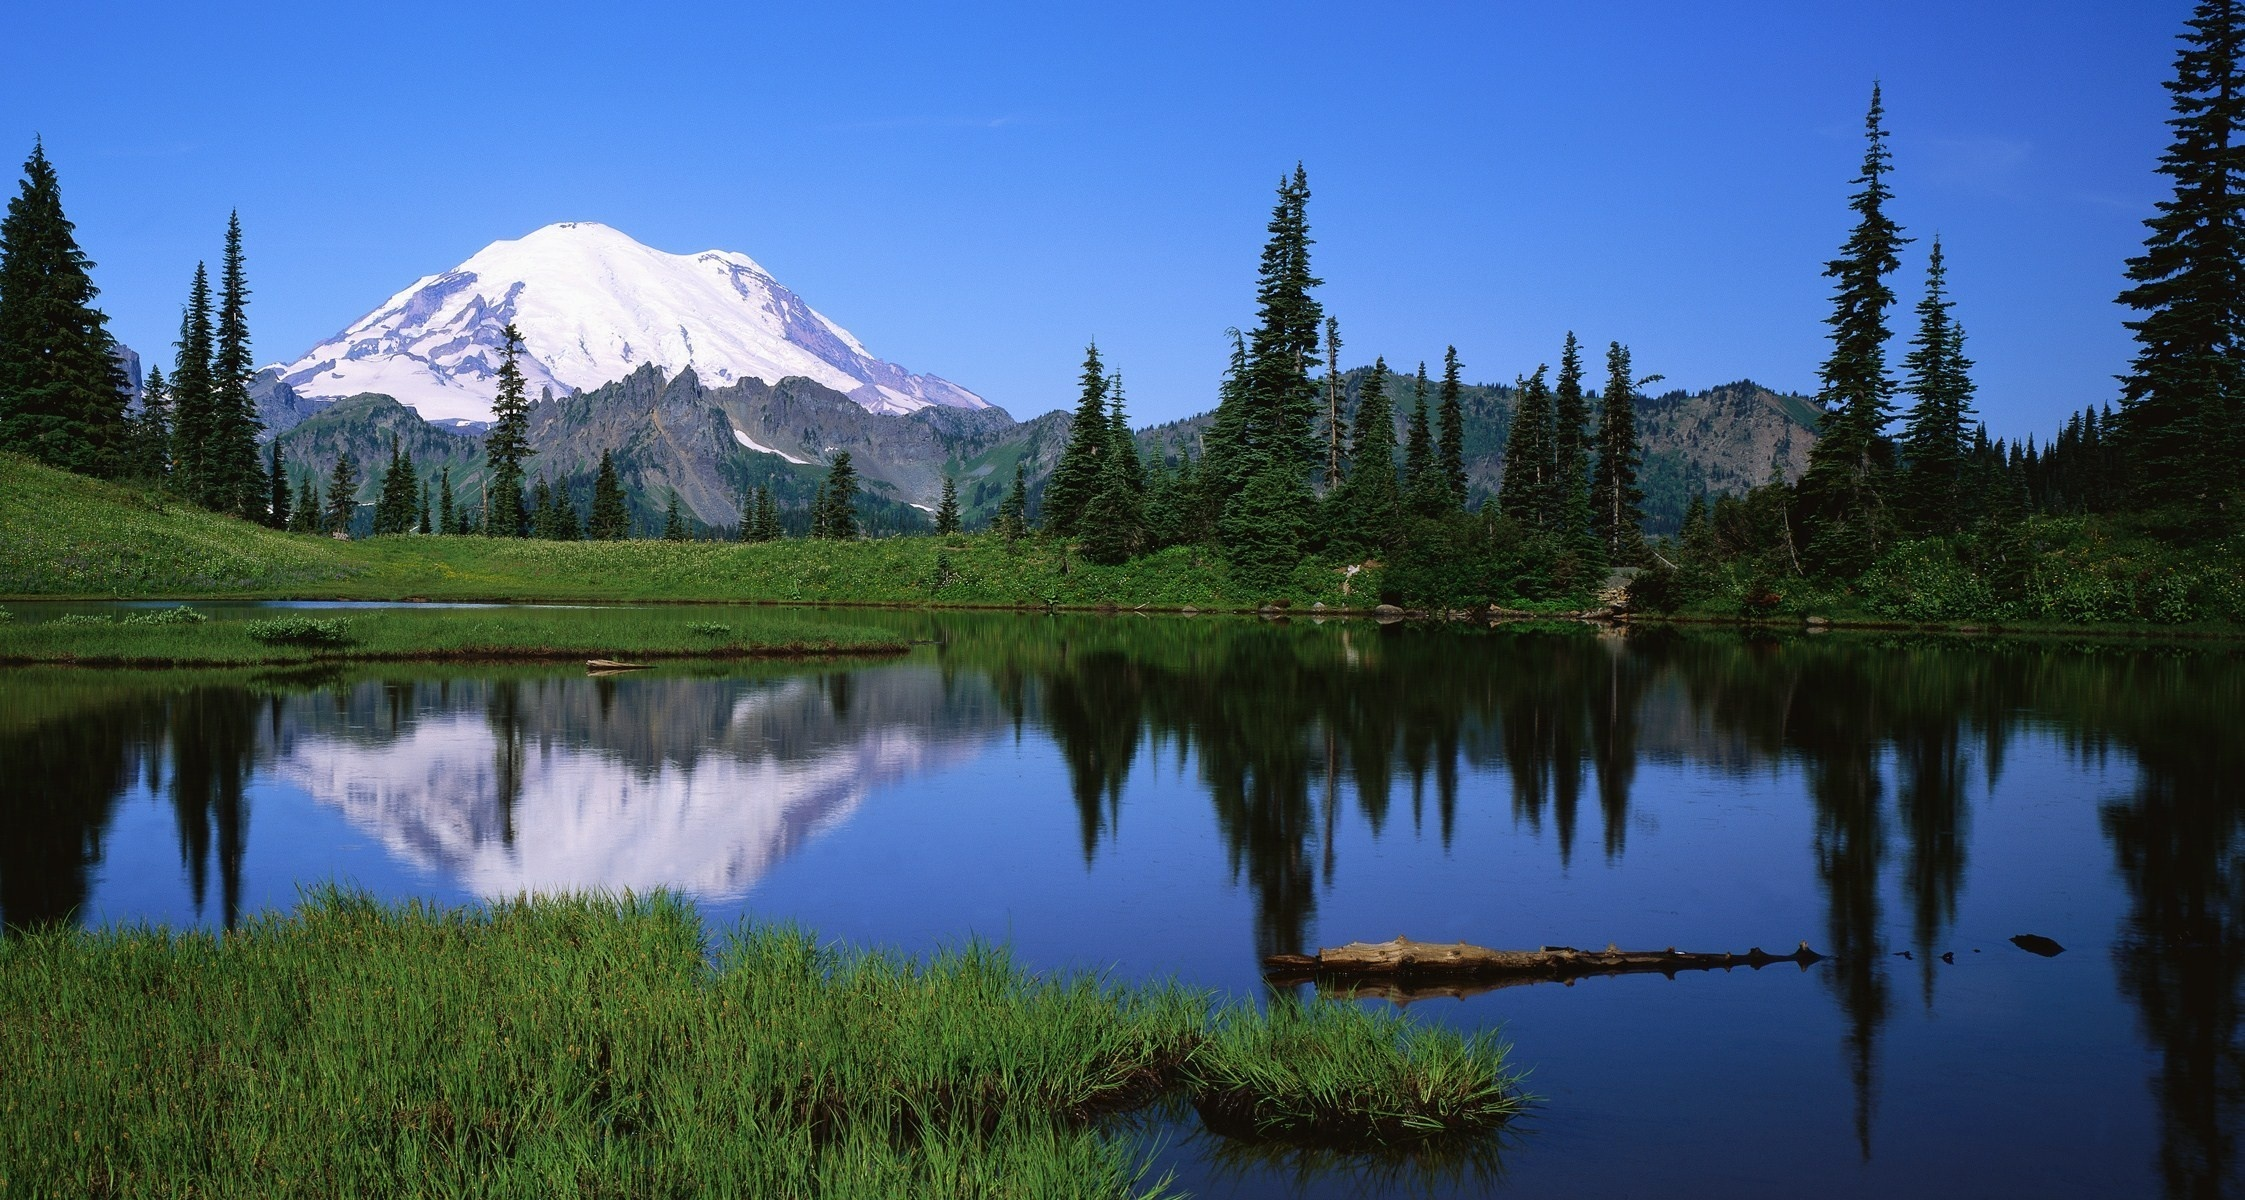 mount rainier washington usa desktop wallpaper Nature GoodWP 2245x1200